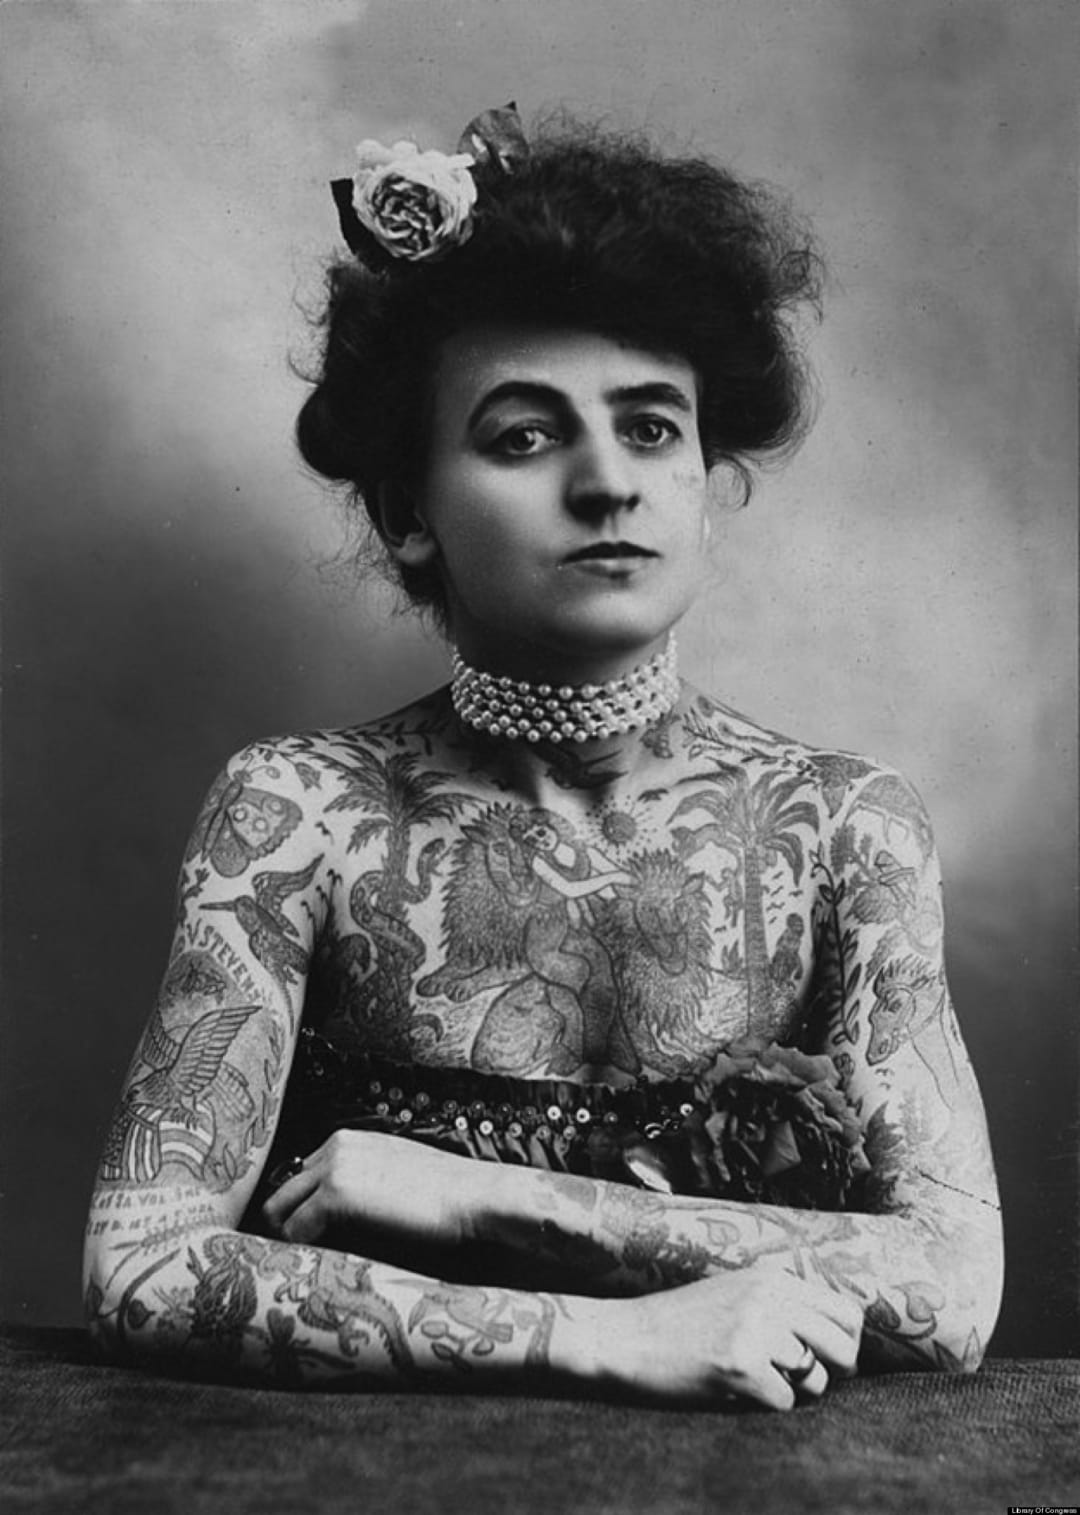 Maud Vagner, an early 20th century circus performer and America's first female tattoo artist!